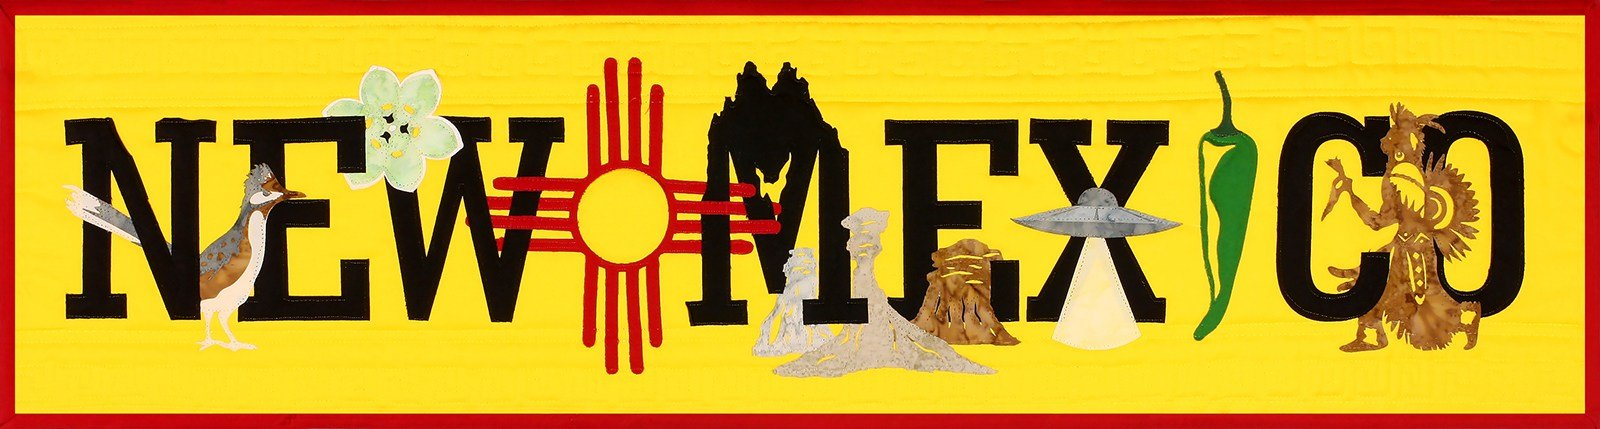 State Pride New Mexico Laser-cut Applique Kit